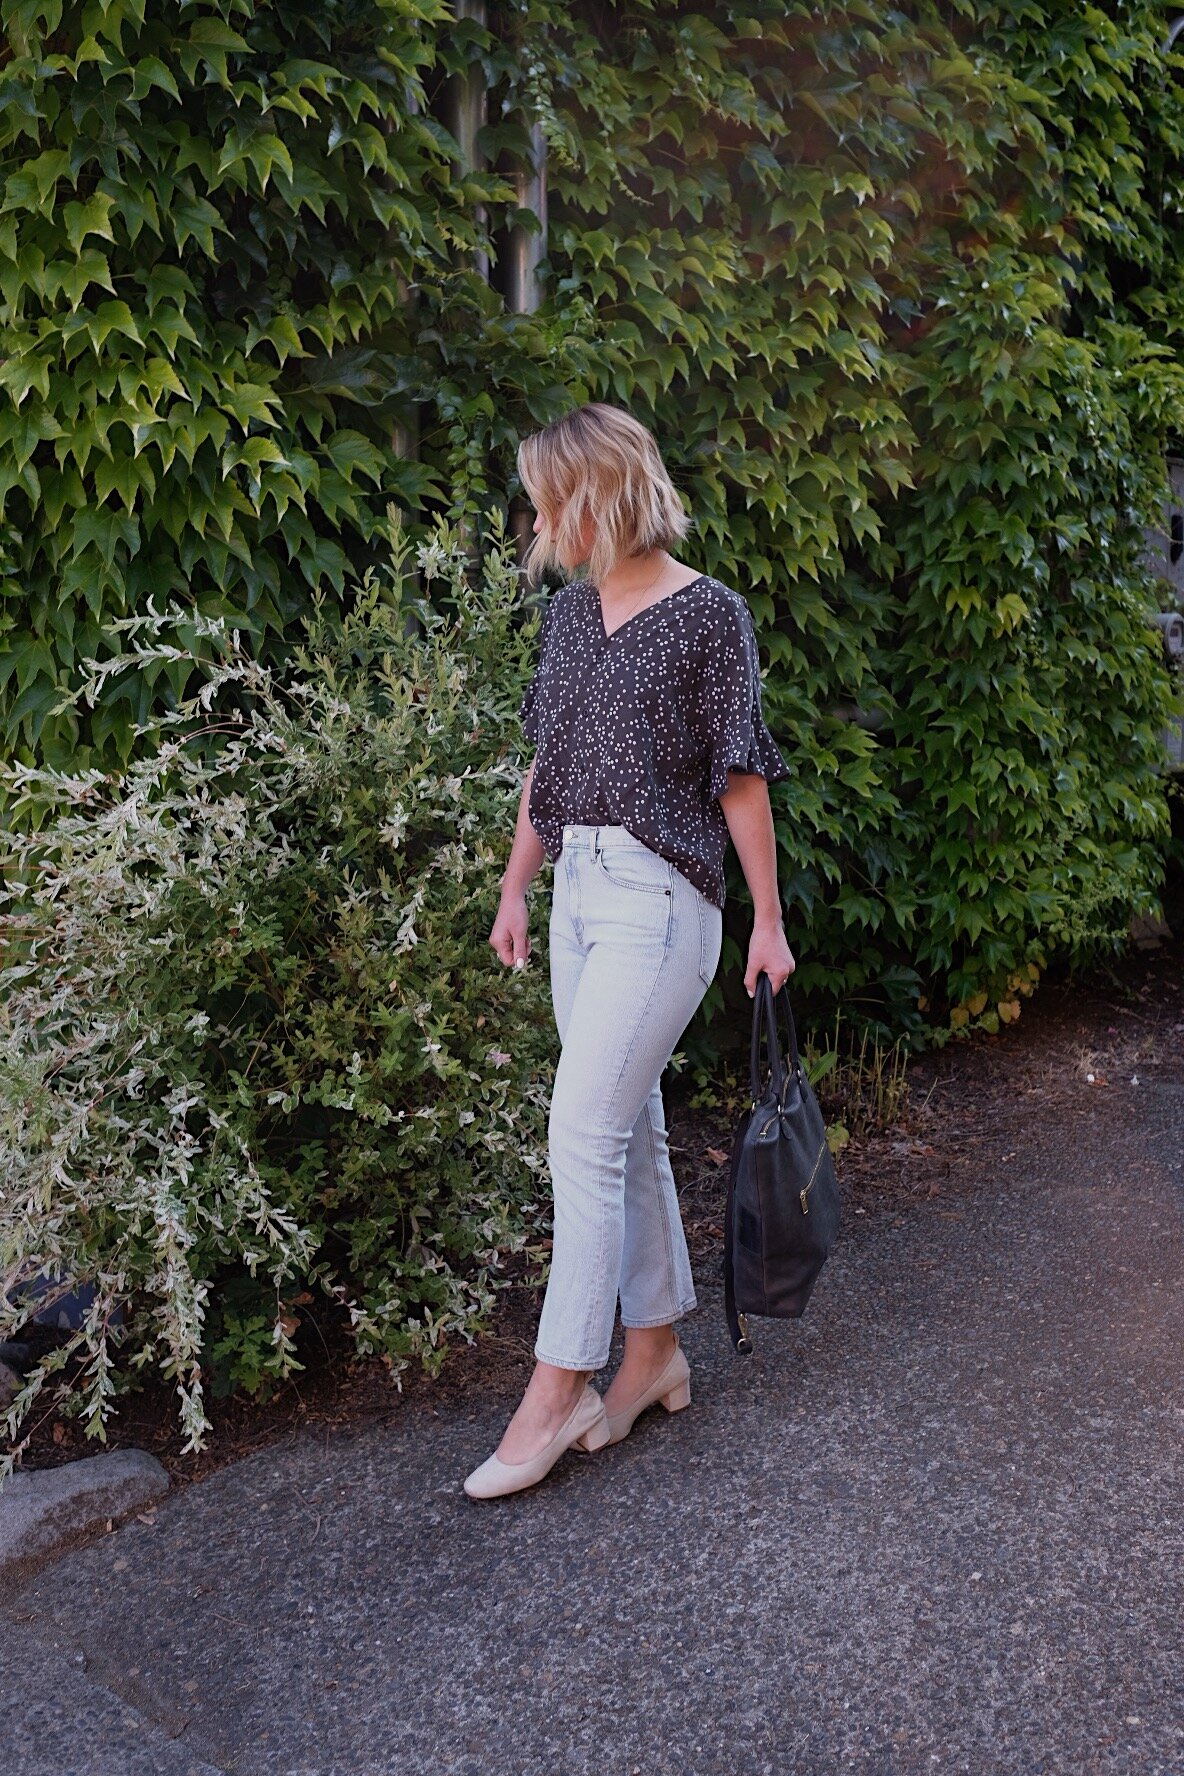 Capsule wardrobe inspiration // A Week Of Minimalist Travel Outfits With Ellie Hughes From Selflessly Styled on The Good Trade